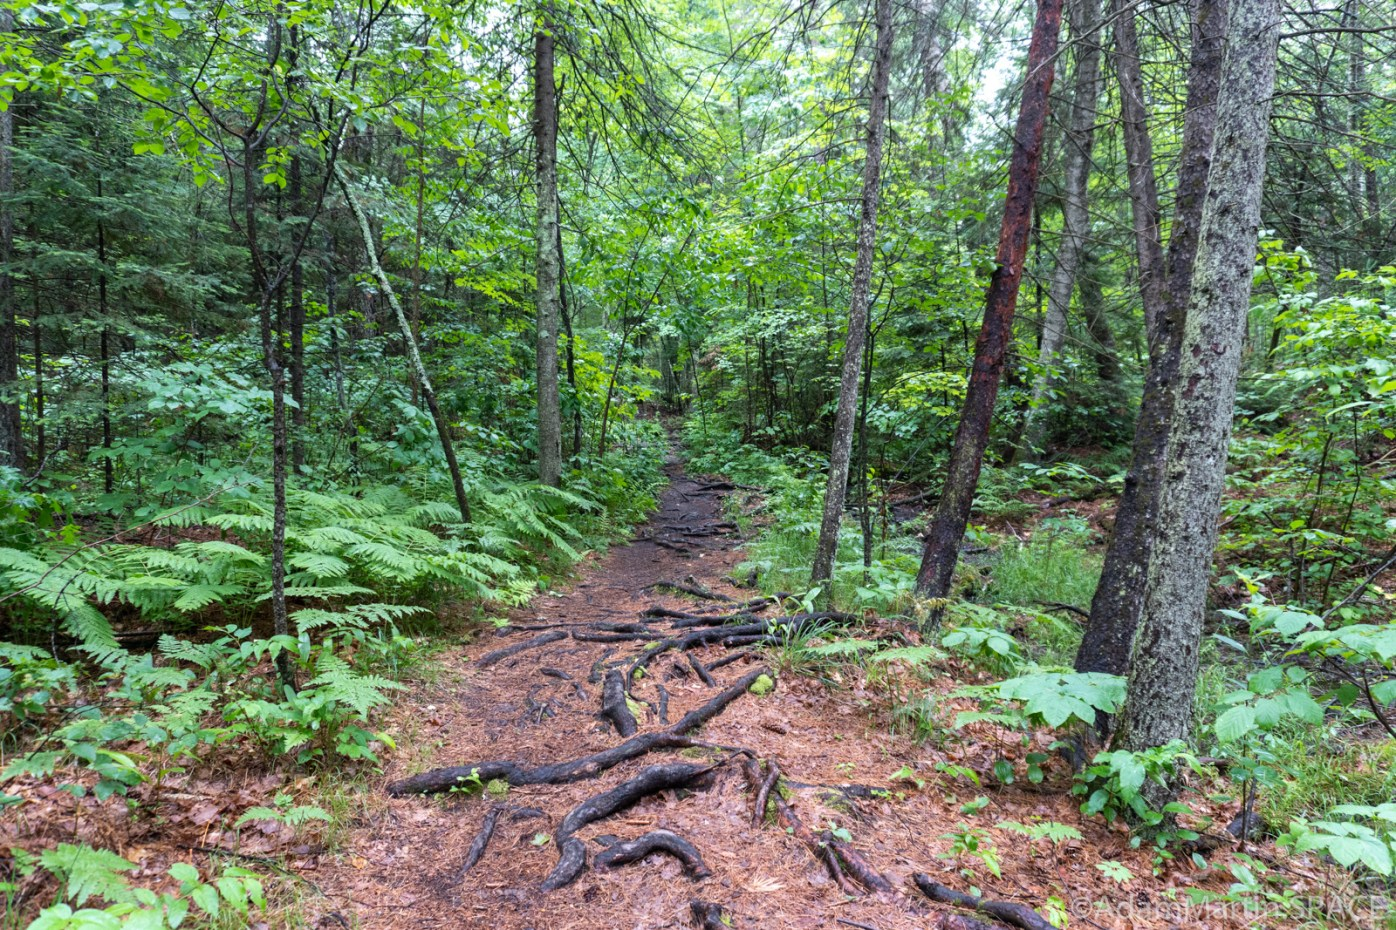 Horseshoe Falls - Trail covered in tree roots